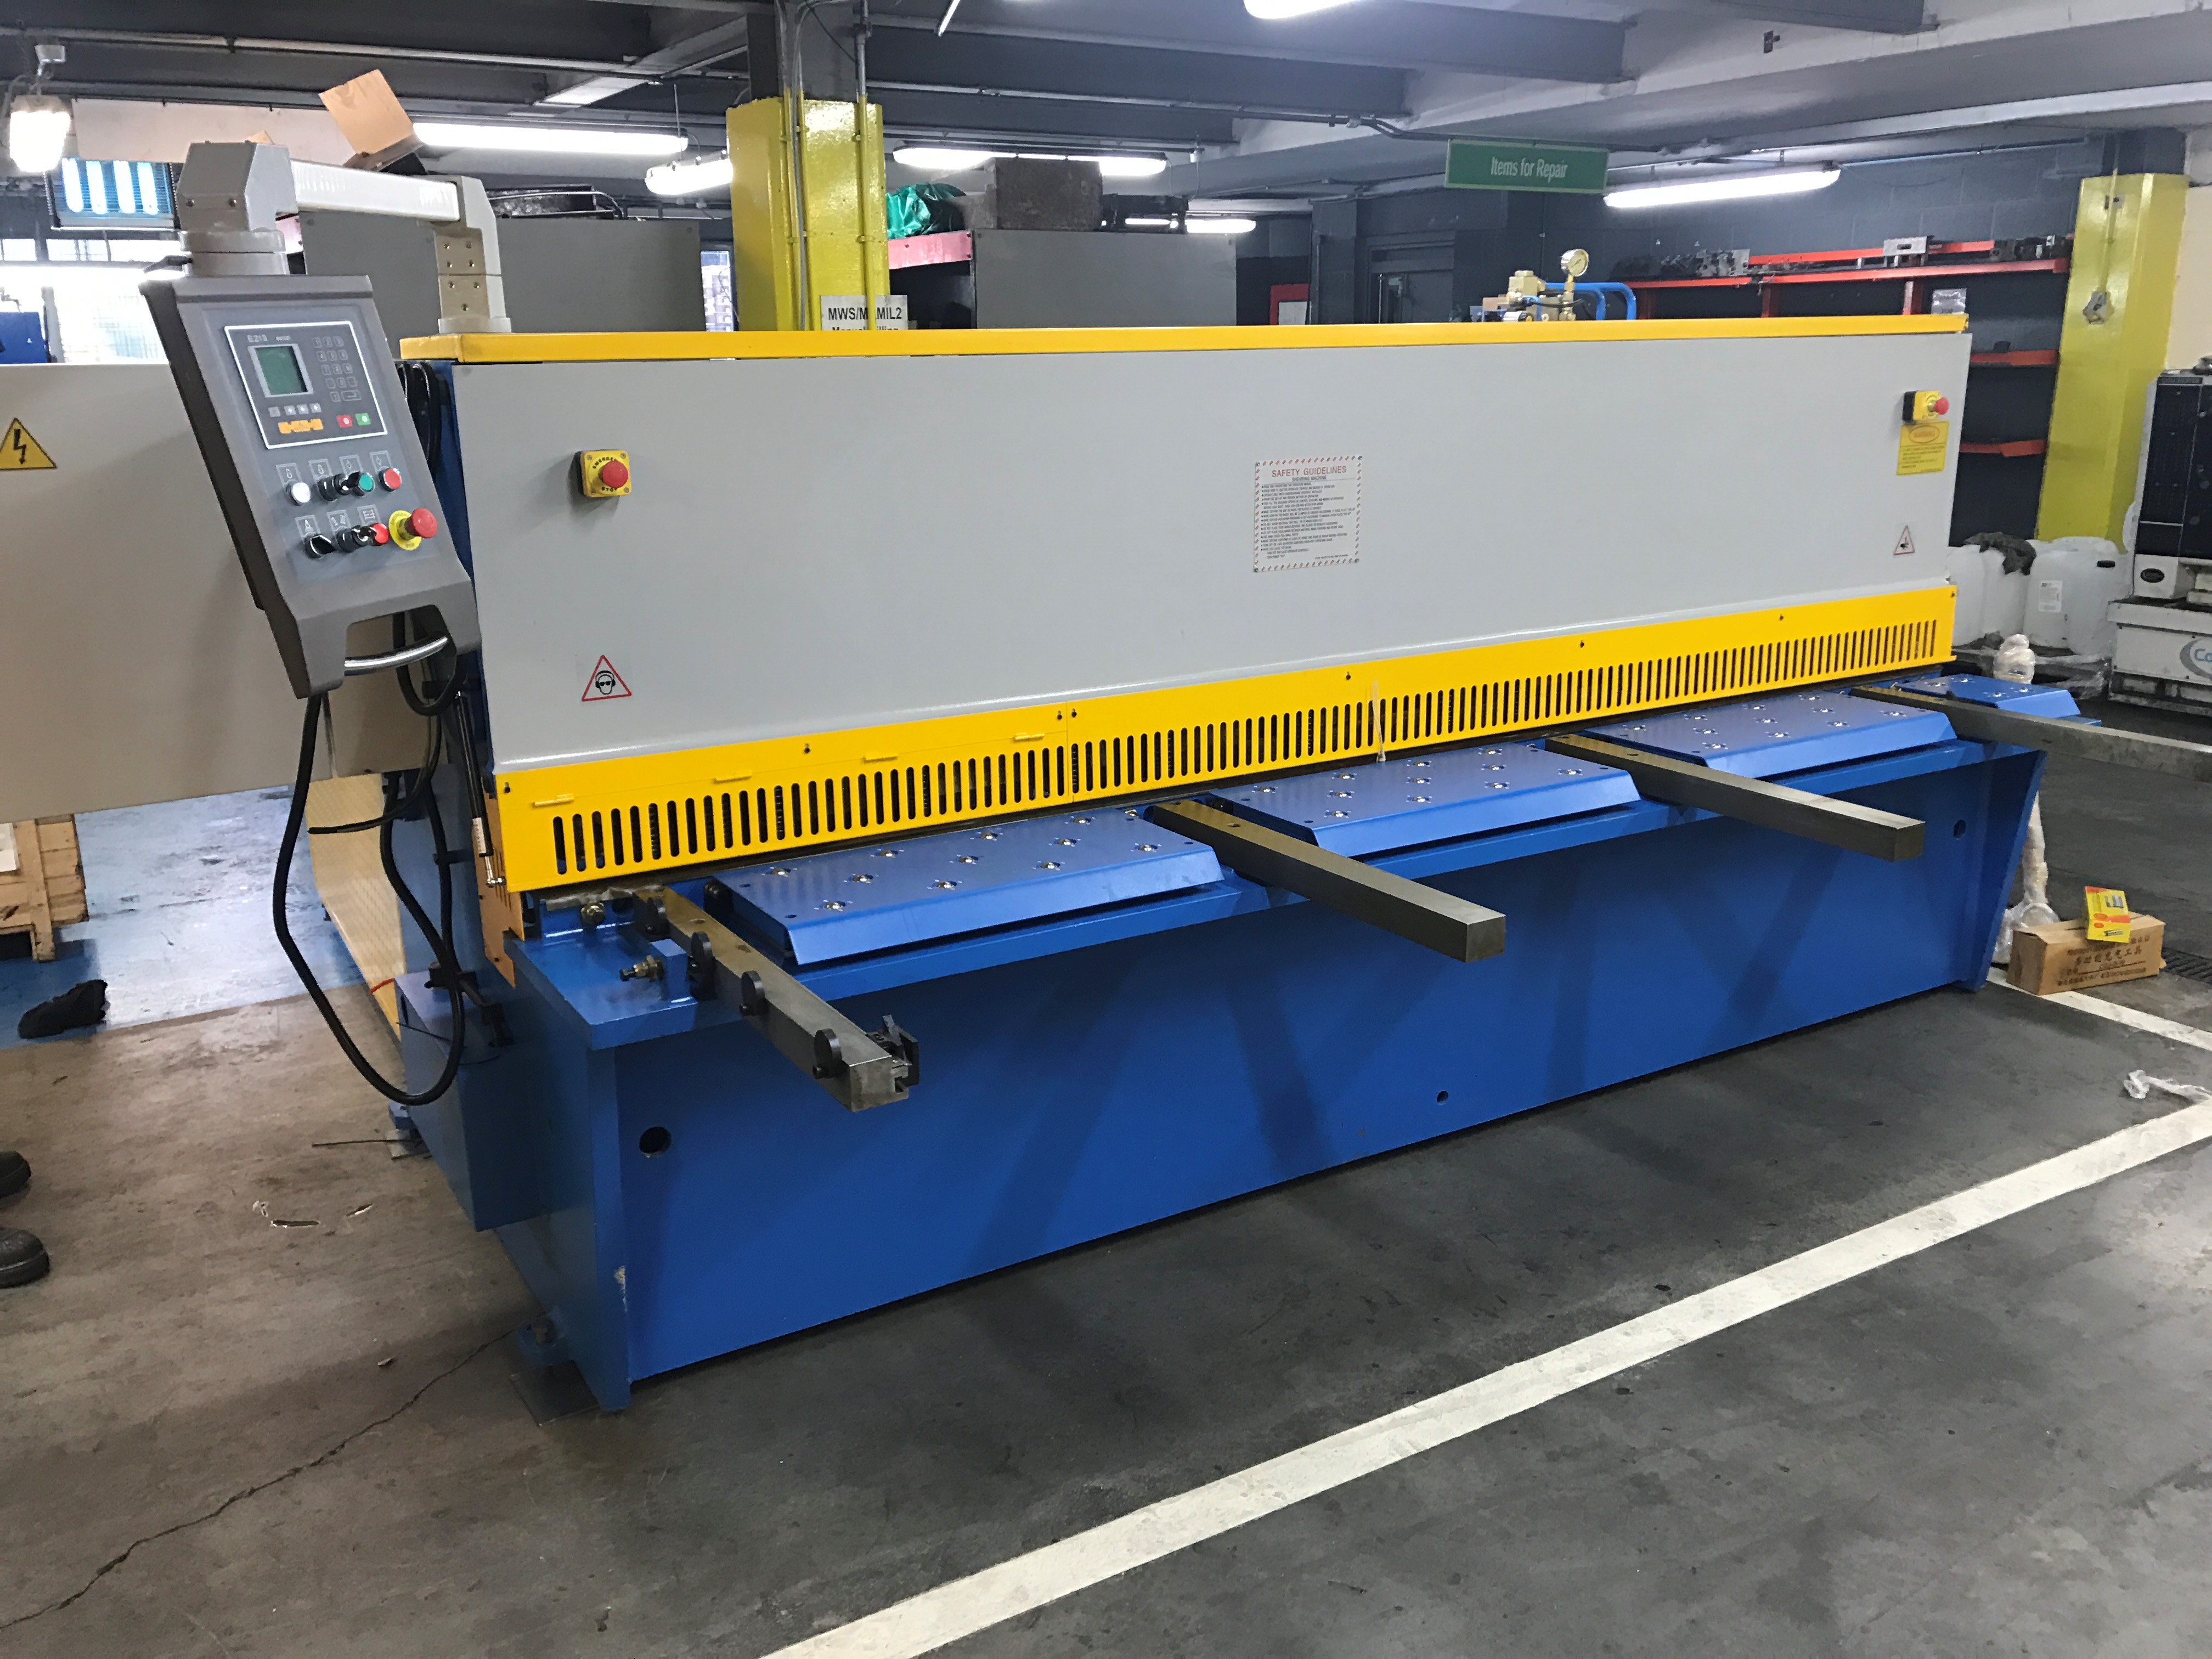 Mach- Cut 3200mm x 6mm hydraulic guillotine